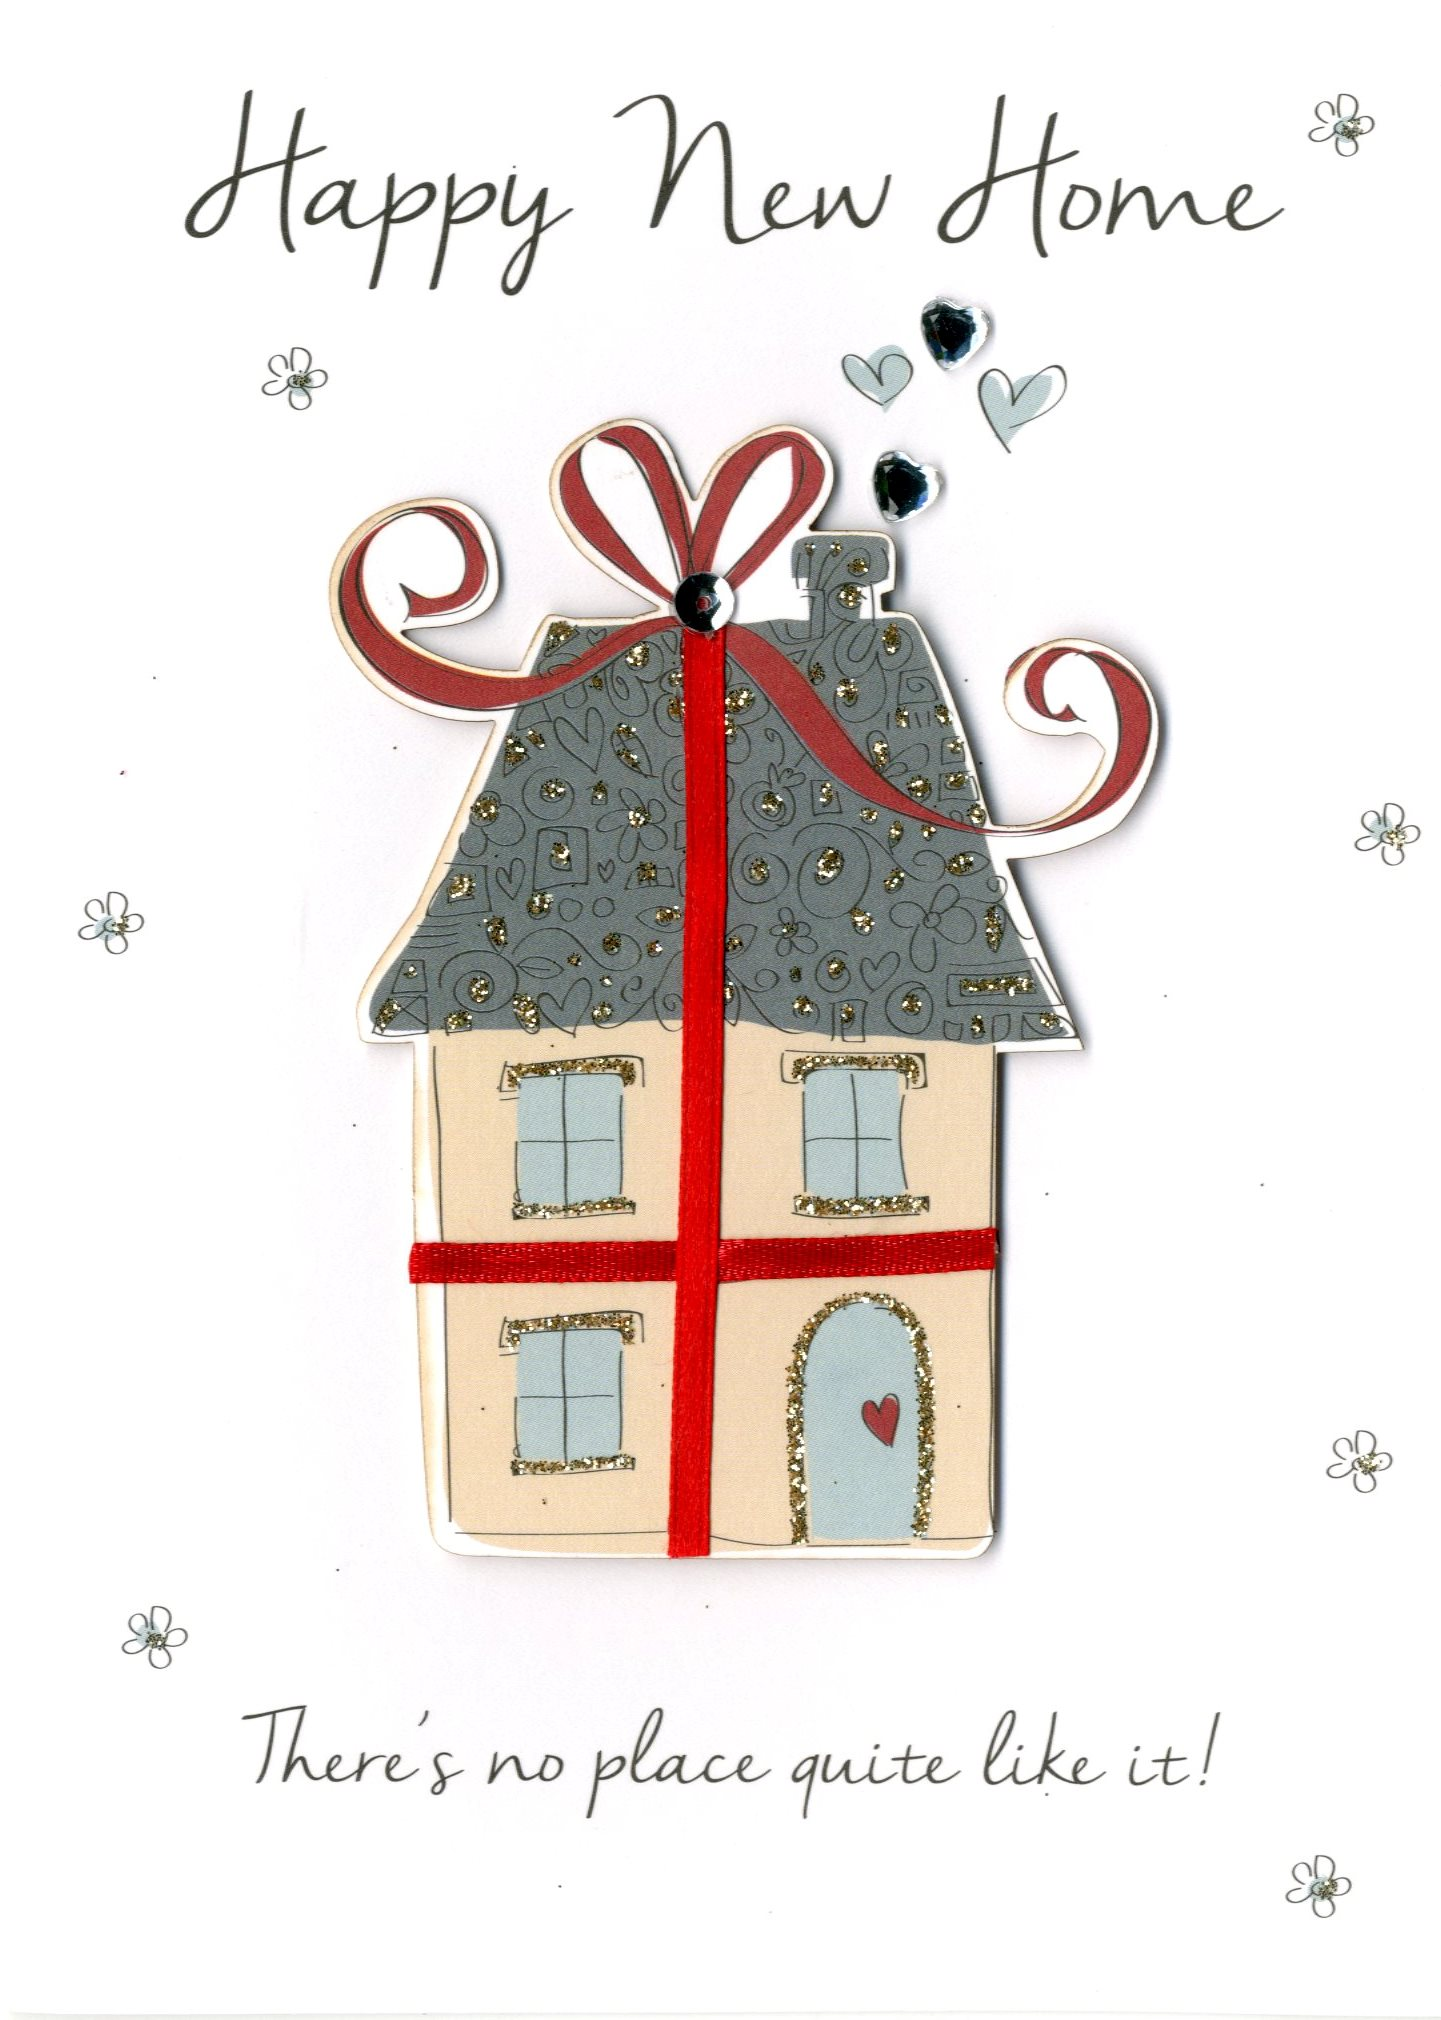 Happy new home greeting card cards love kates happy new home greeting card m4hsunfo